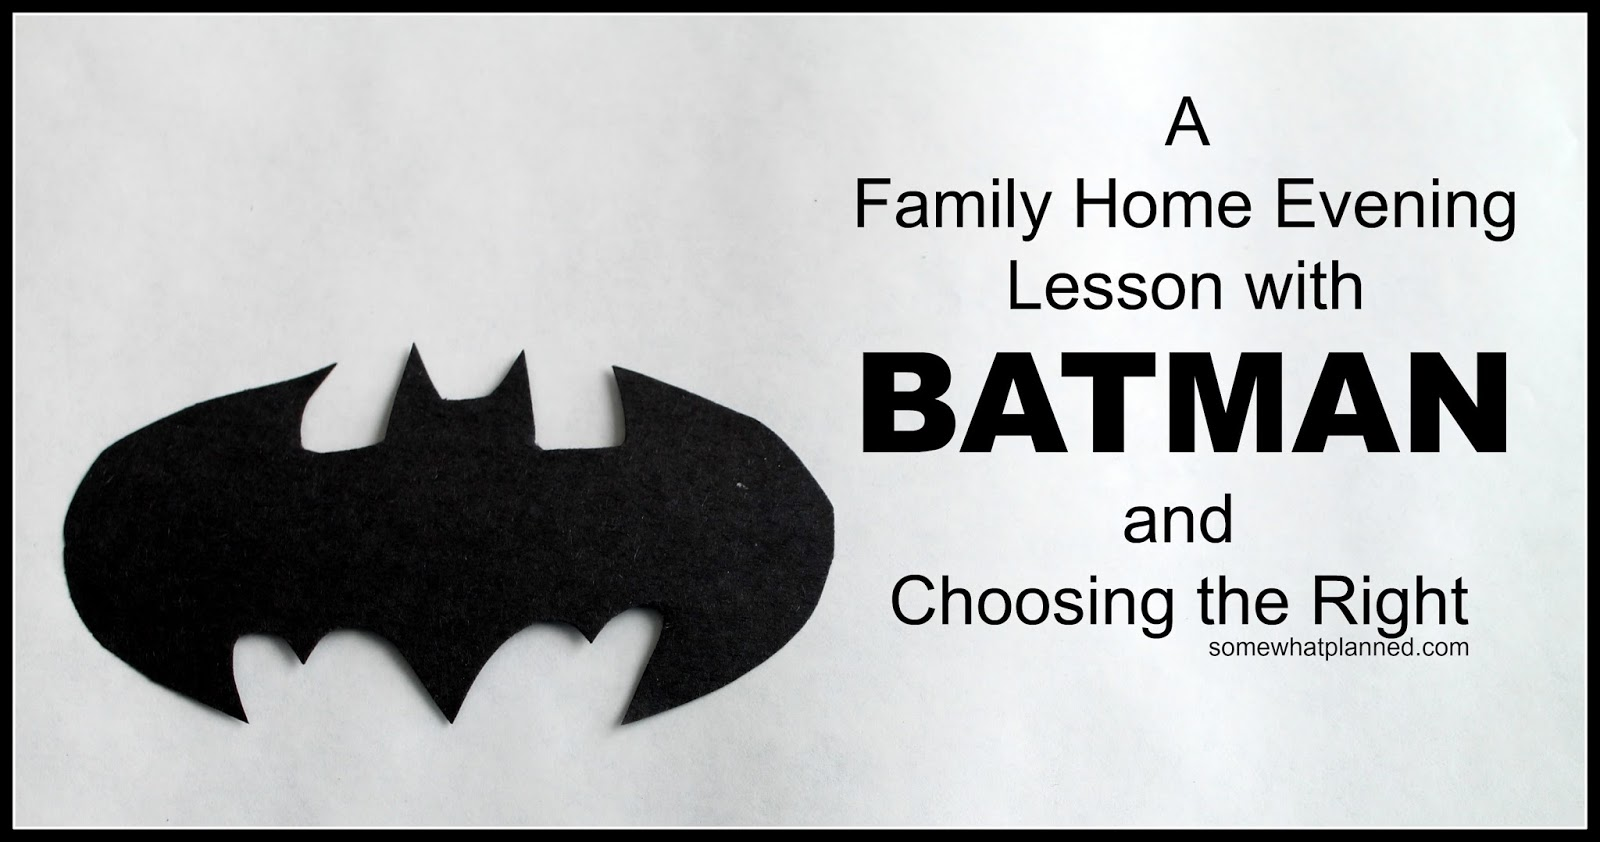 FHE Lesson- BATMAN and Choosing The Right - Somewhat Planned